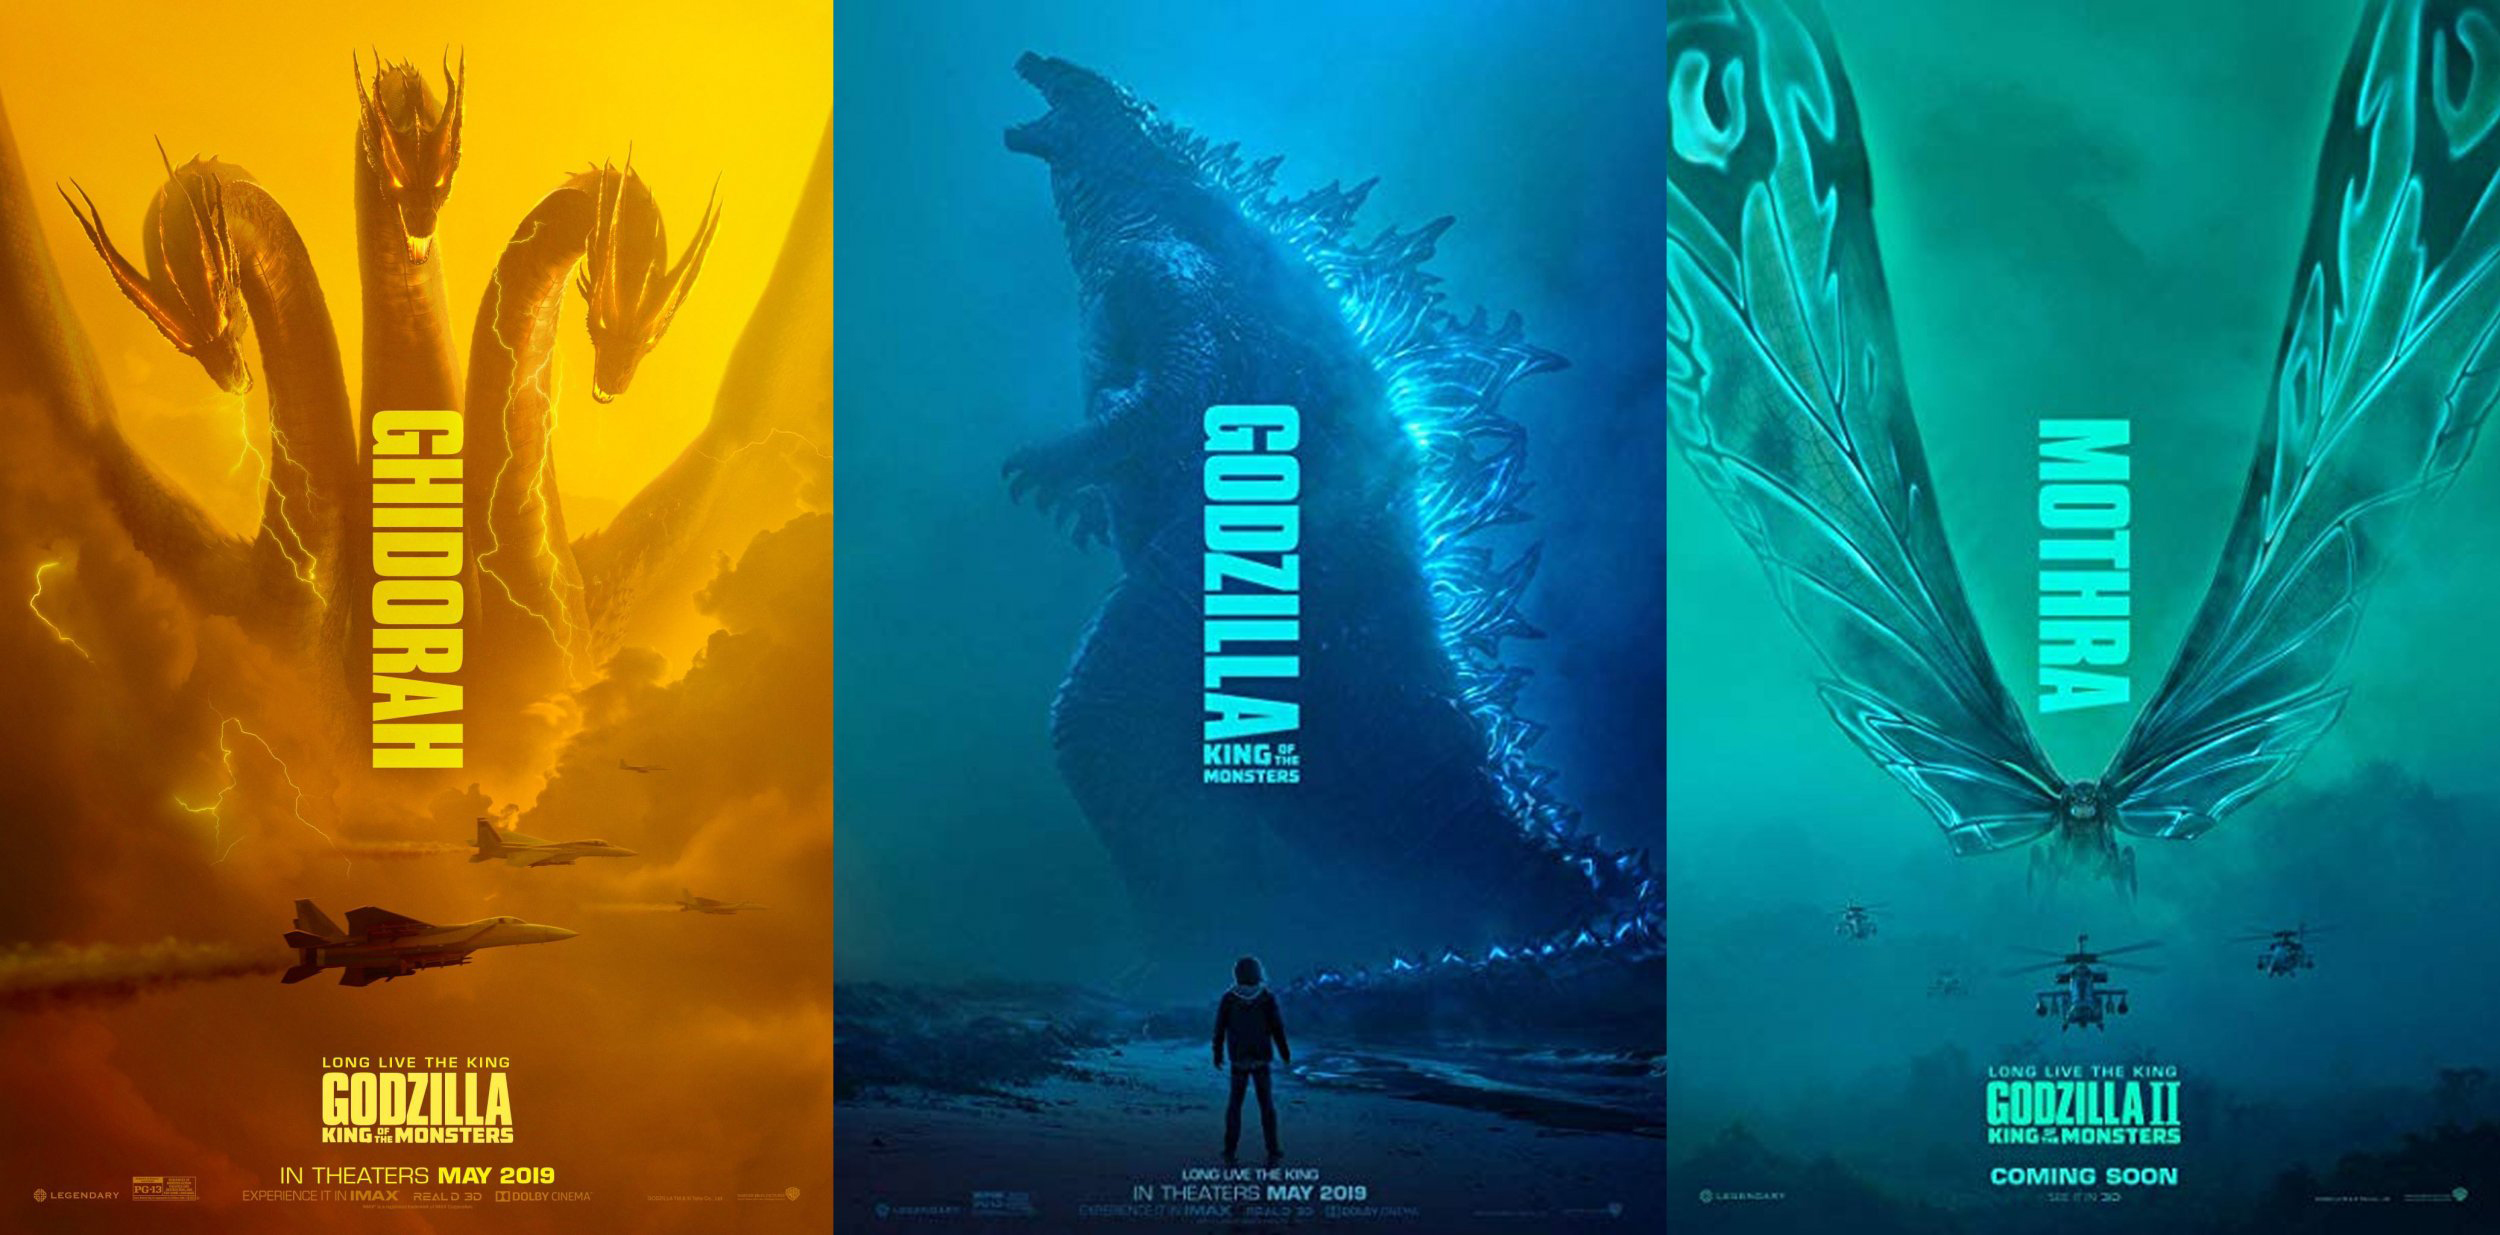 a8a0835a268 Hail Hydra! Josh Pearce and Arley Sorg Discuss Godzilla: King of the  Monsters